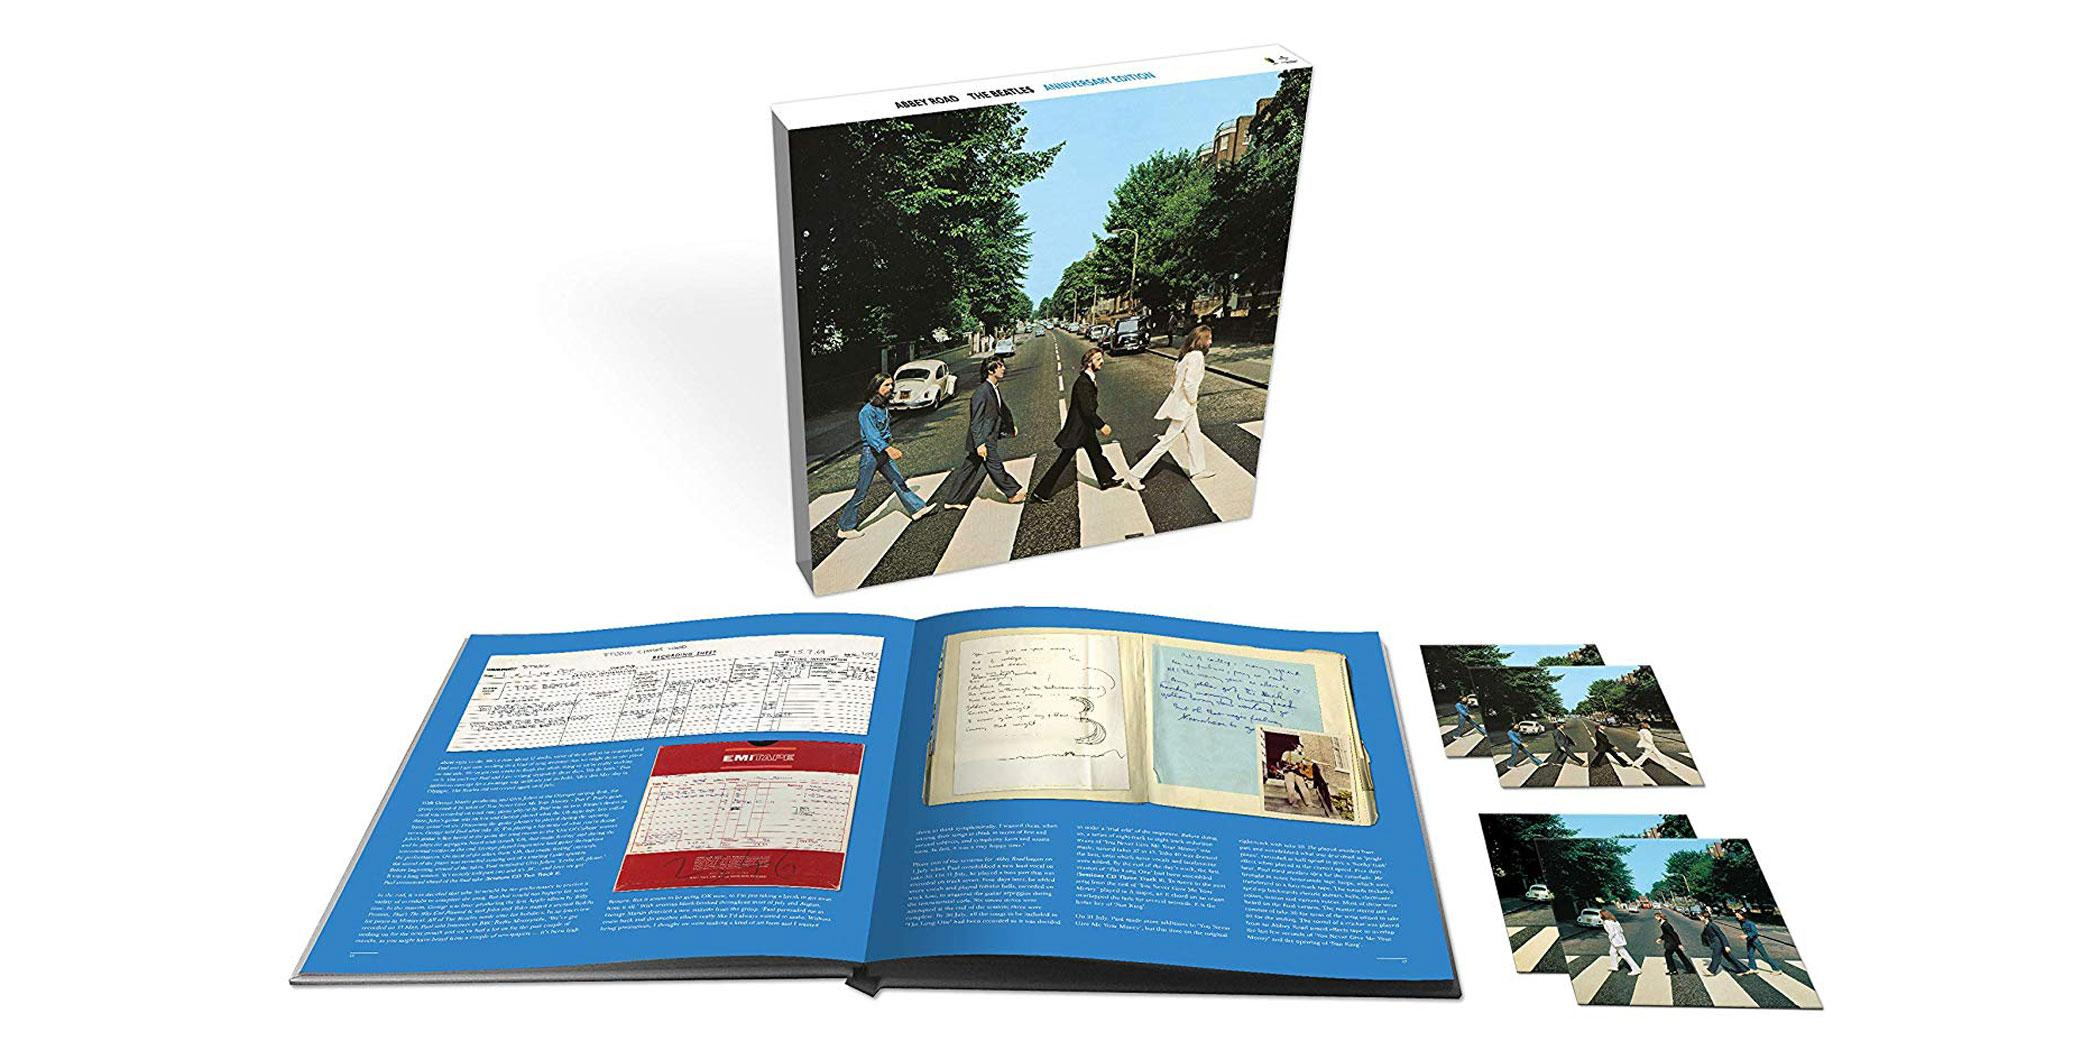 Abbey Road: Anniversary Super Deluxe Edition, the Beatles